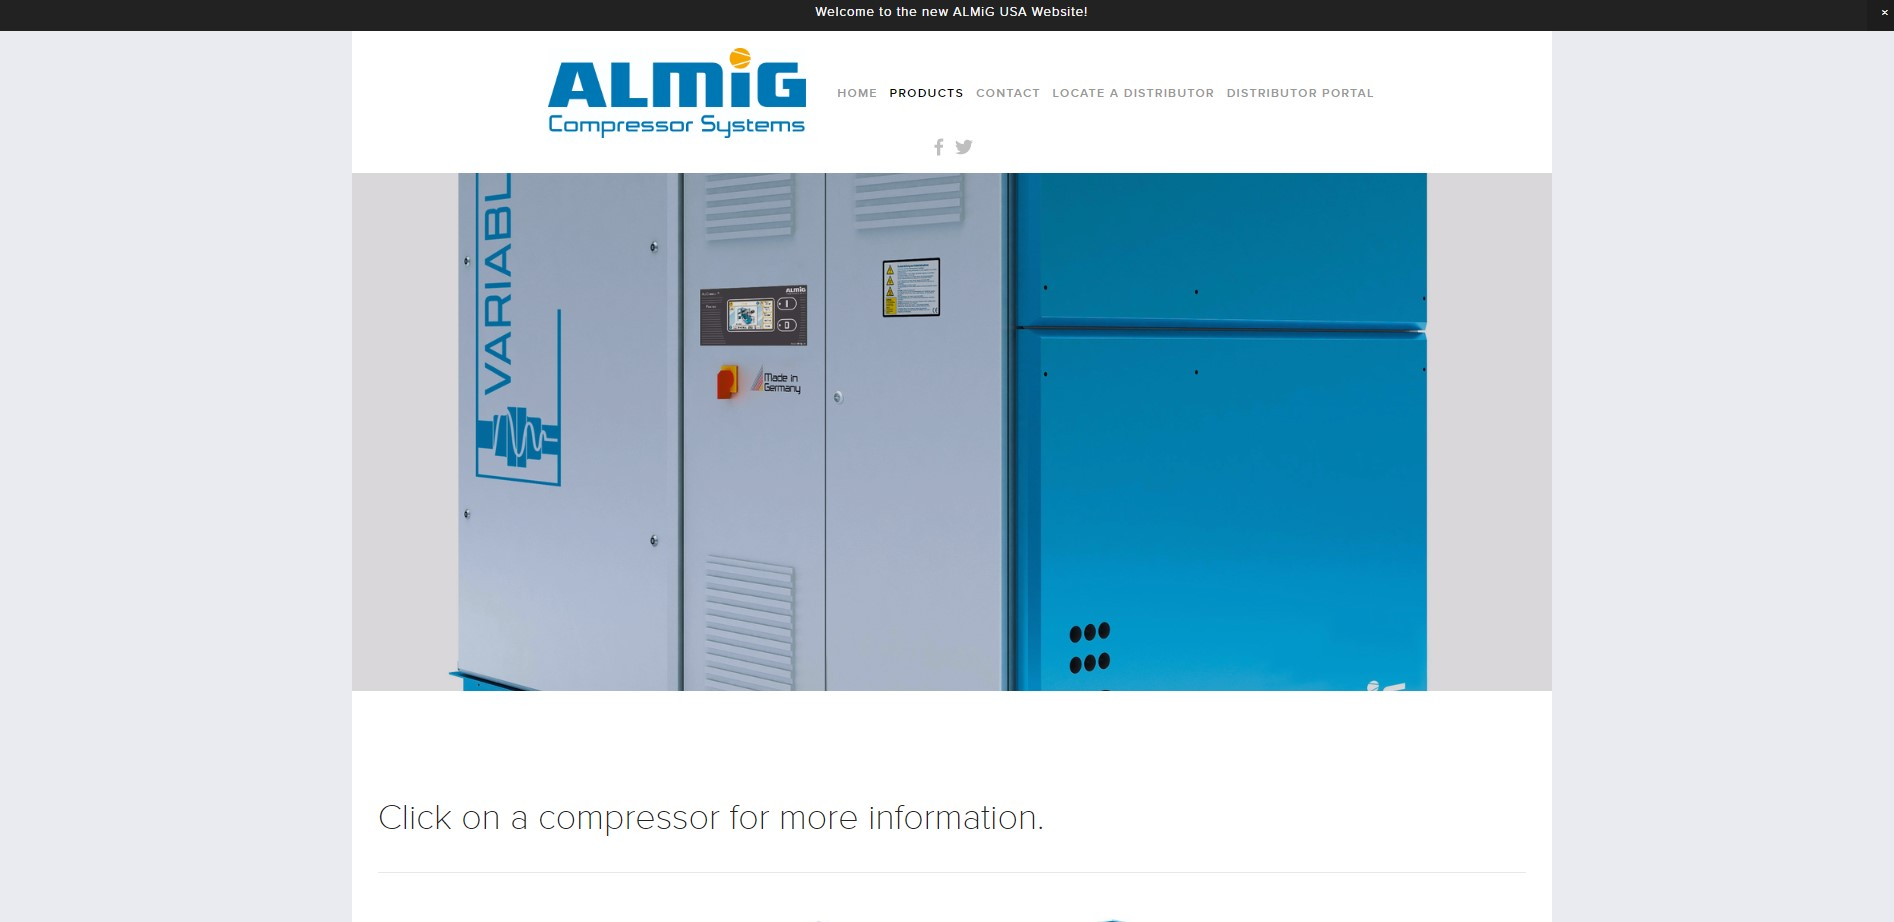 ALMiG USA Corporation